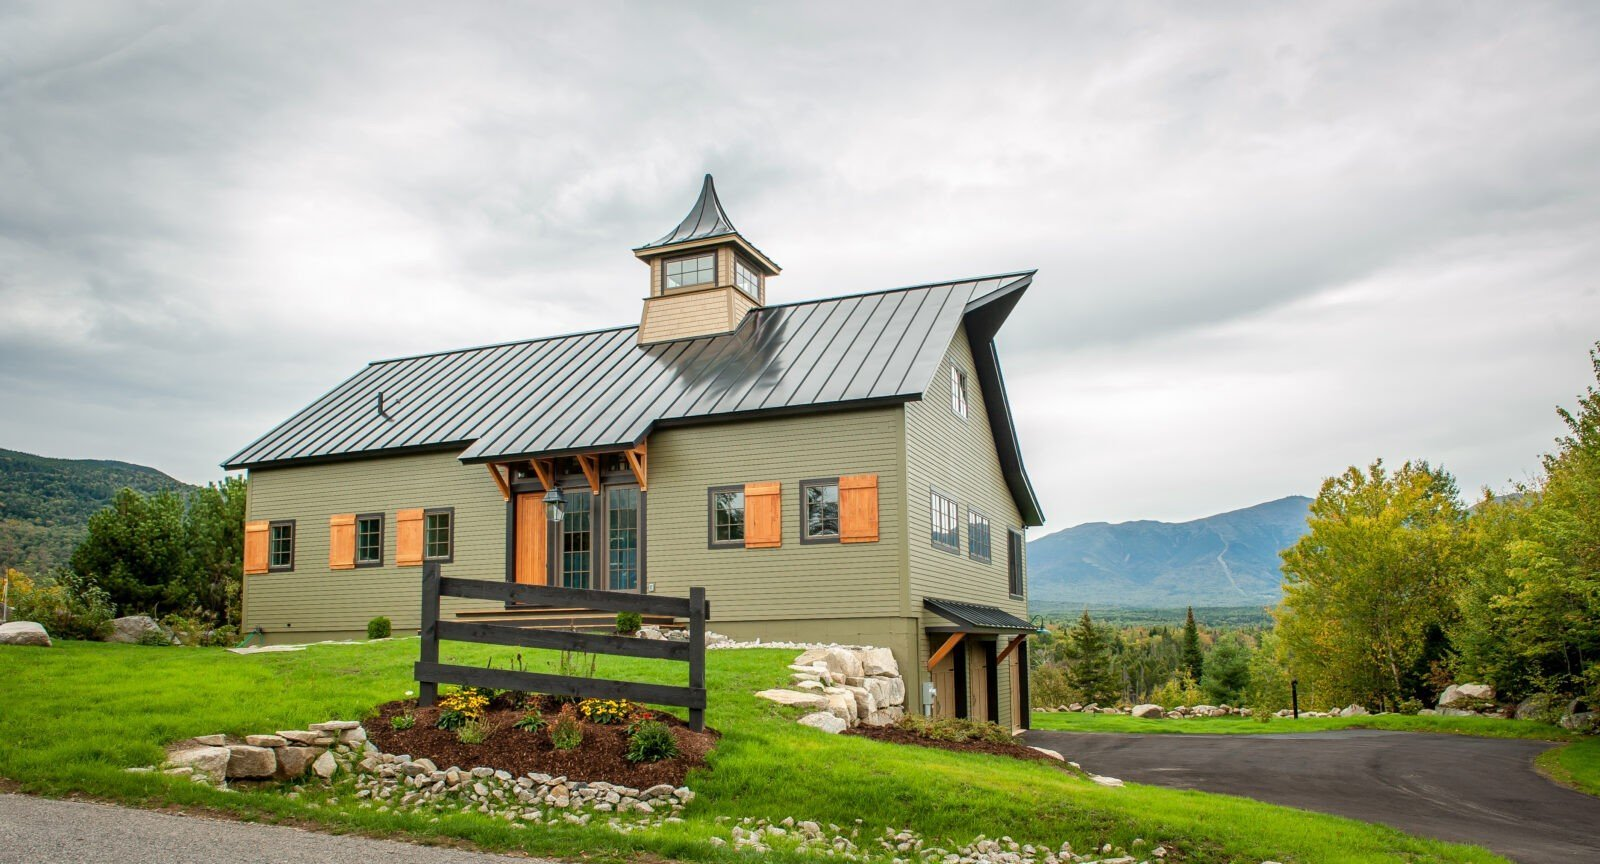 Top notch barn home plans from the ybh design team for Best barn designs